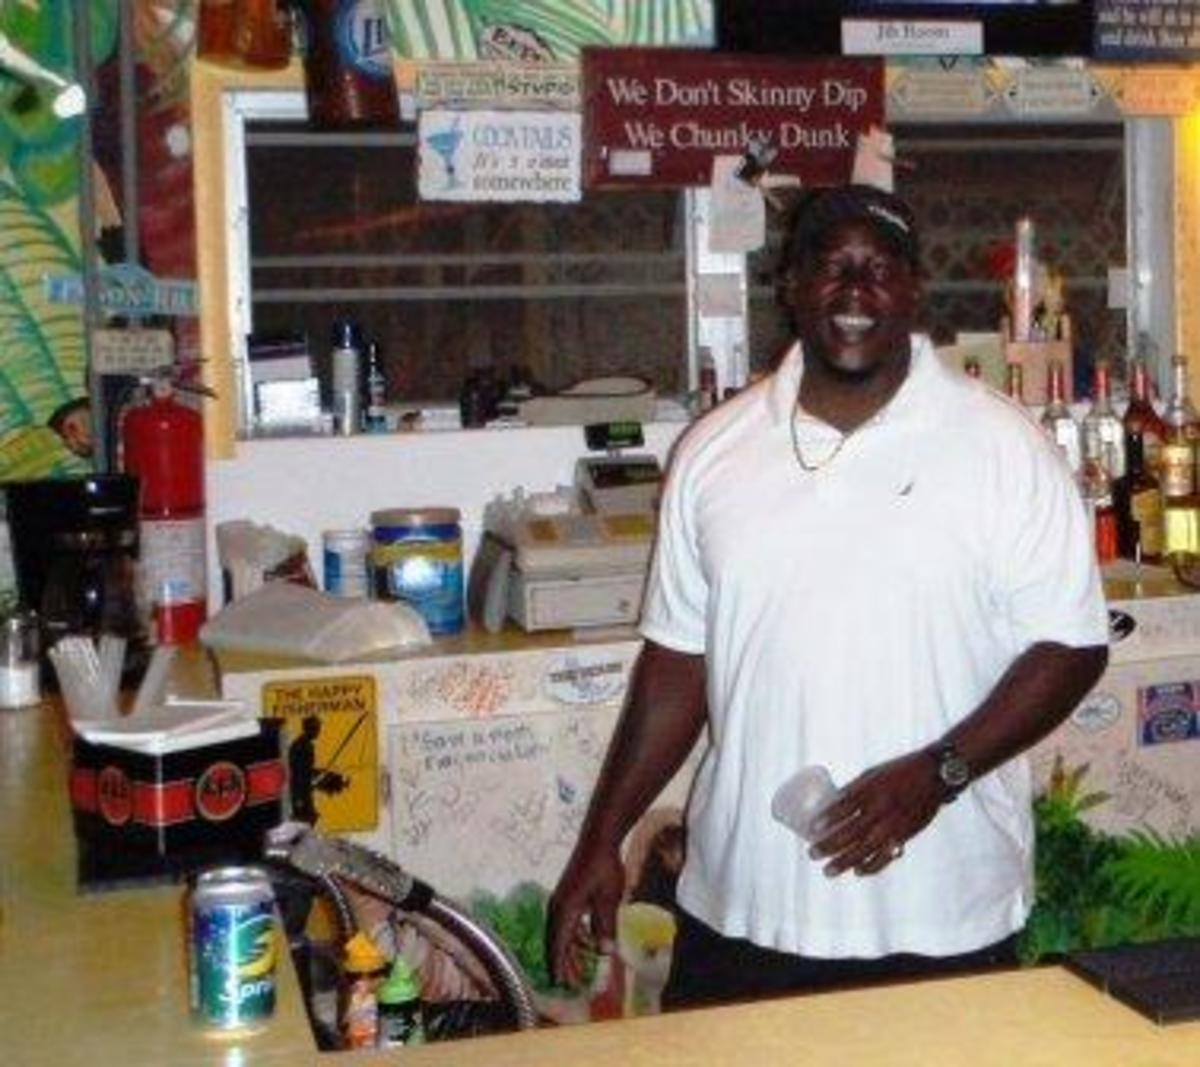 Jason Davis the dockmaster in better days who helped us protect Mud Puddle Rose as best as possible. This bar no longer exists.